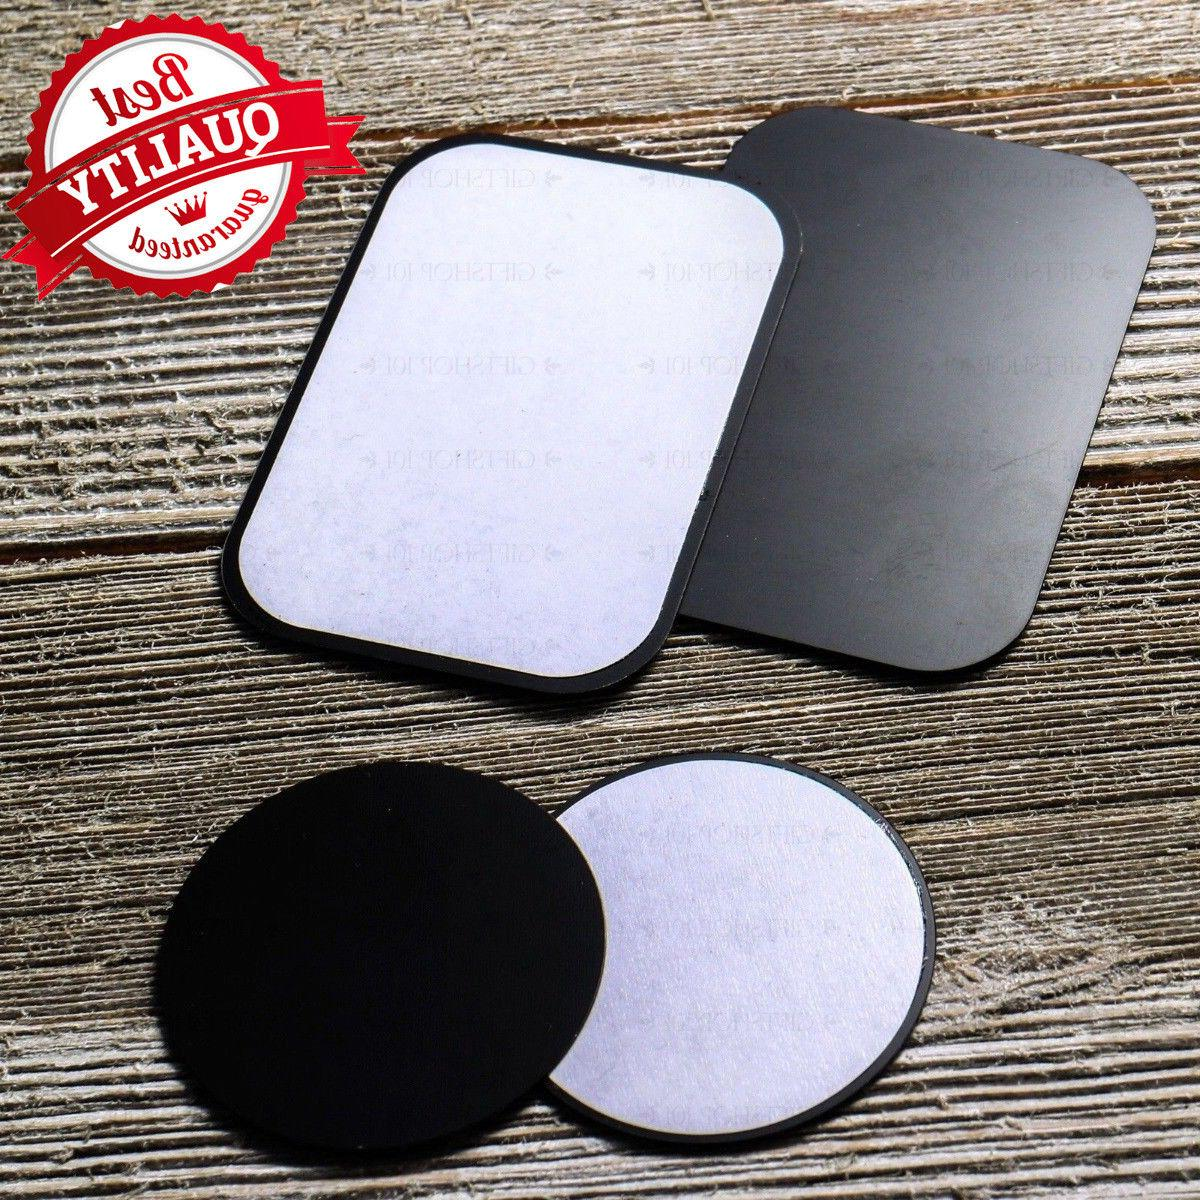 8 PACK Metal Plates Adhesive Sticker Replace For Magnetic Ca